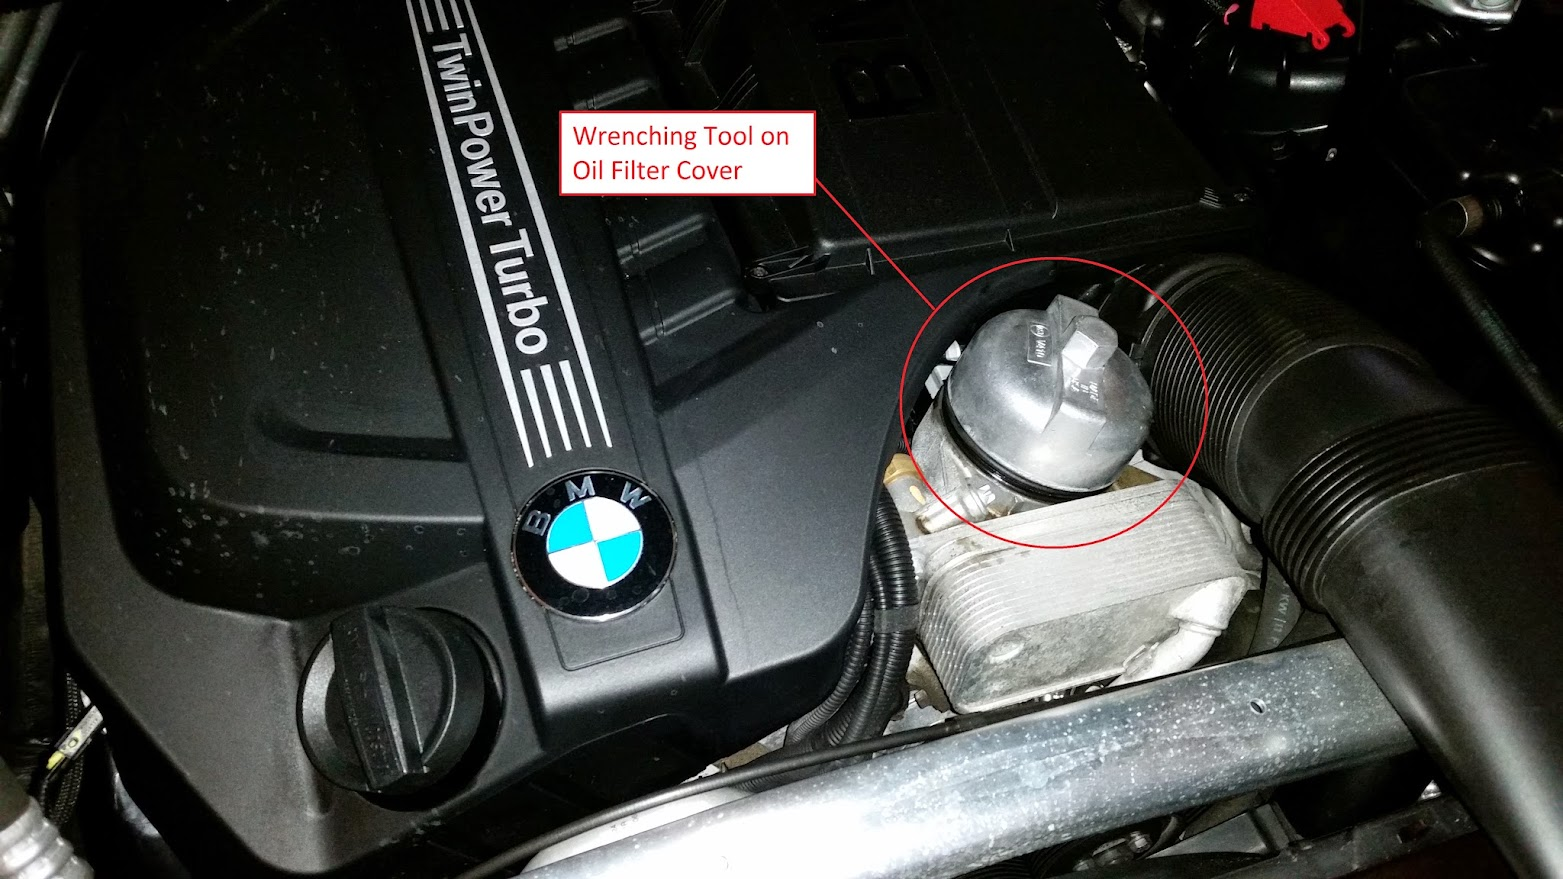 Remove the oil drain plug using a 17mm socket there should be a little cover that you have to remove to expose the drain plug but of course